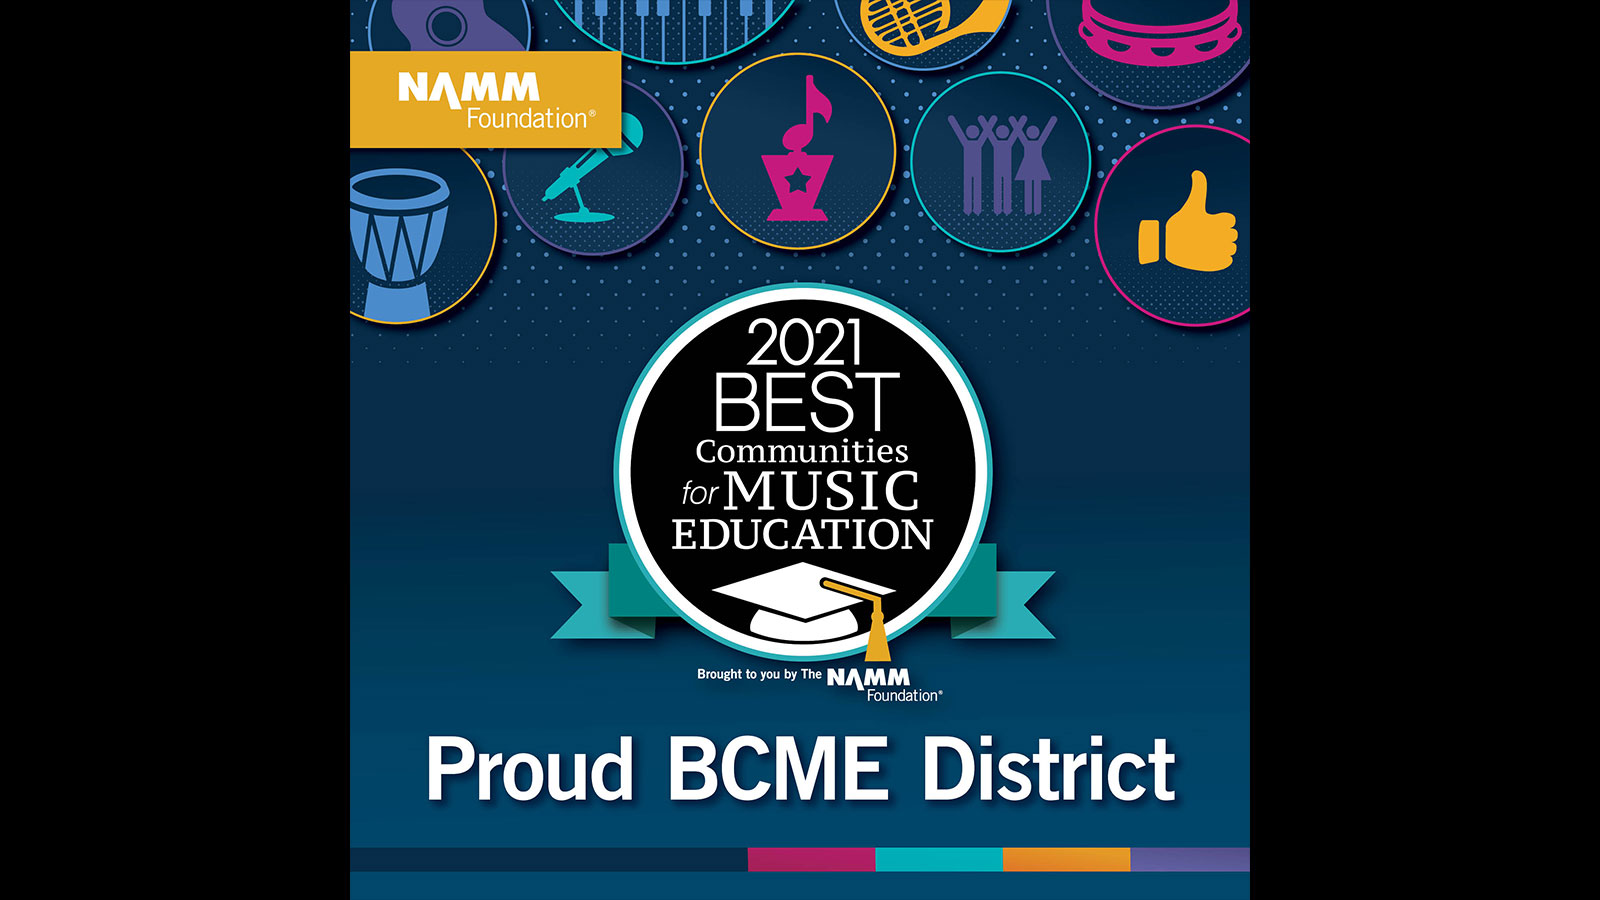 NAMM Foundation - 2021 Best Communities for Music Education - Proud BCME District